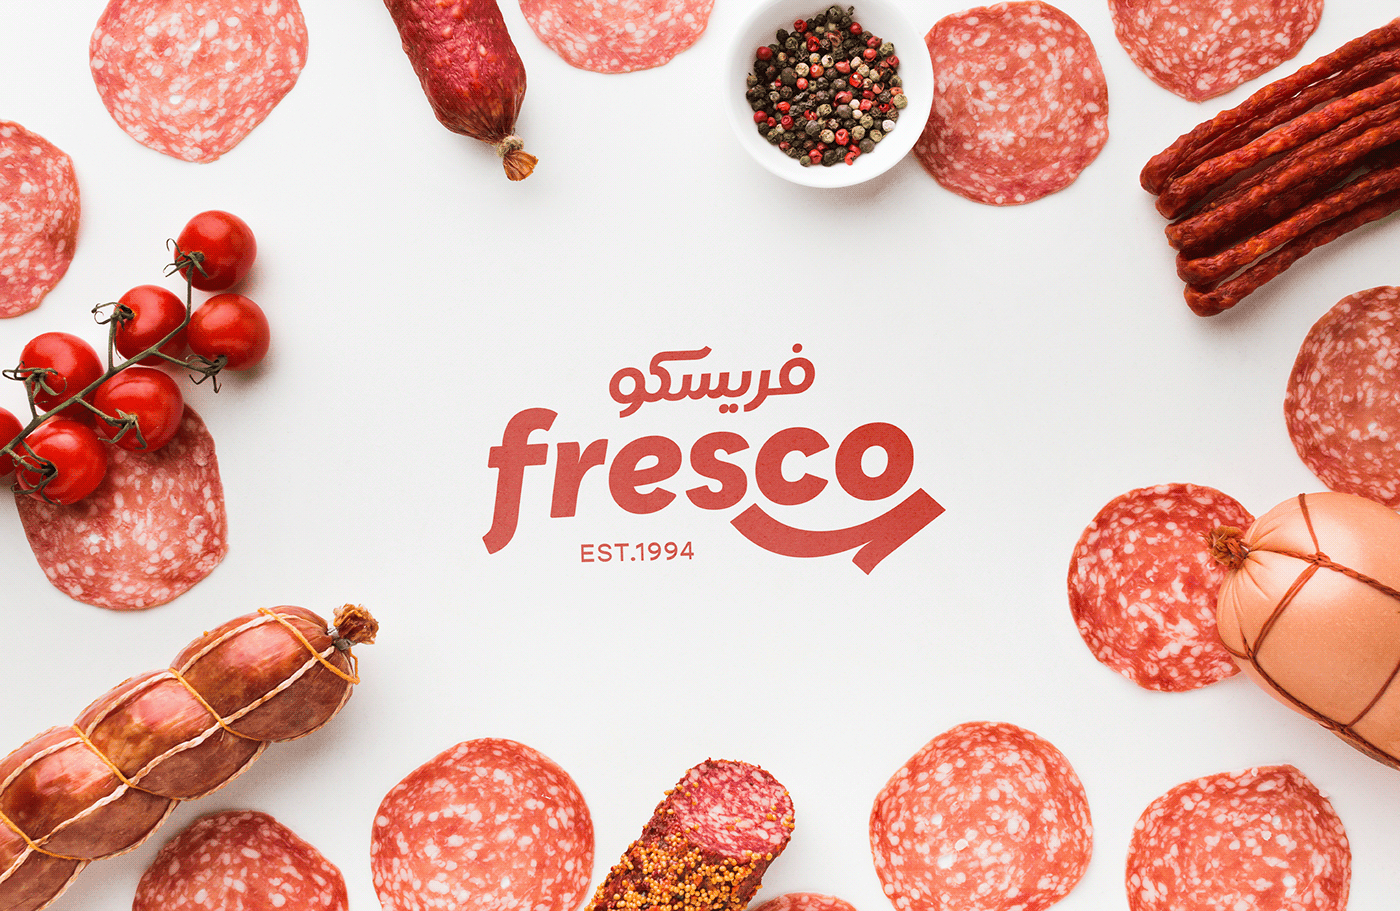 chicken Food  fresco meat procced manufacturing